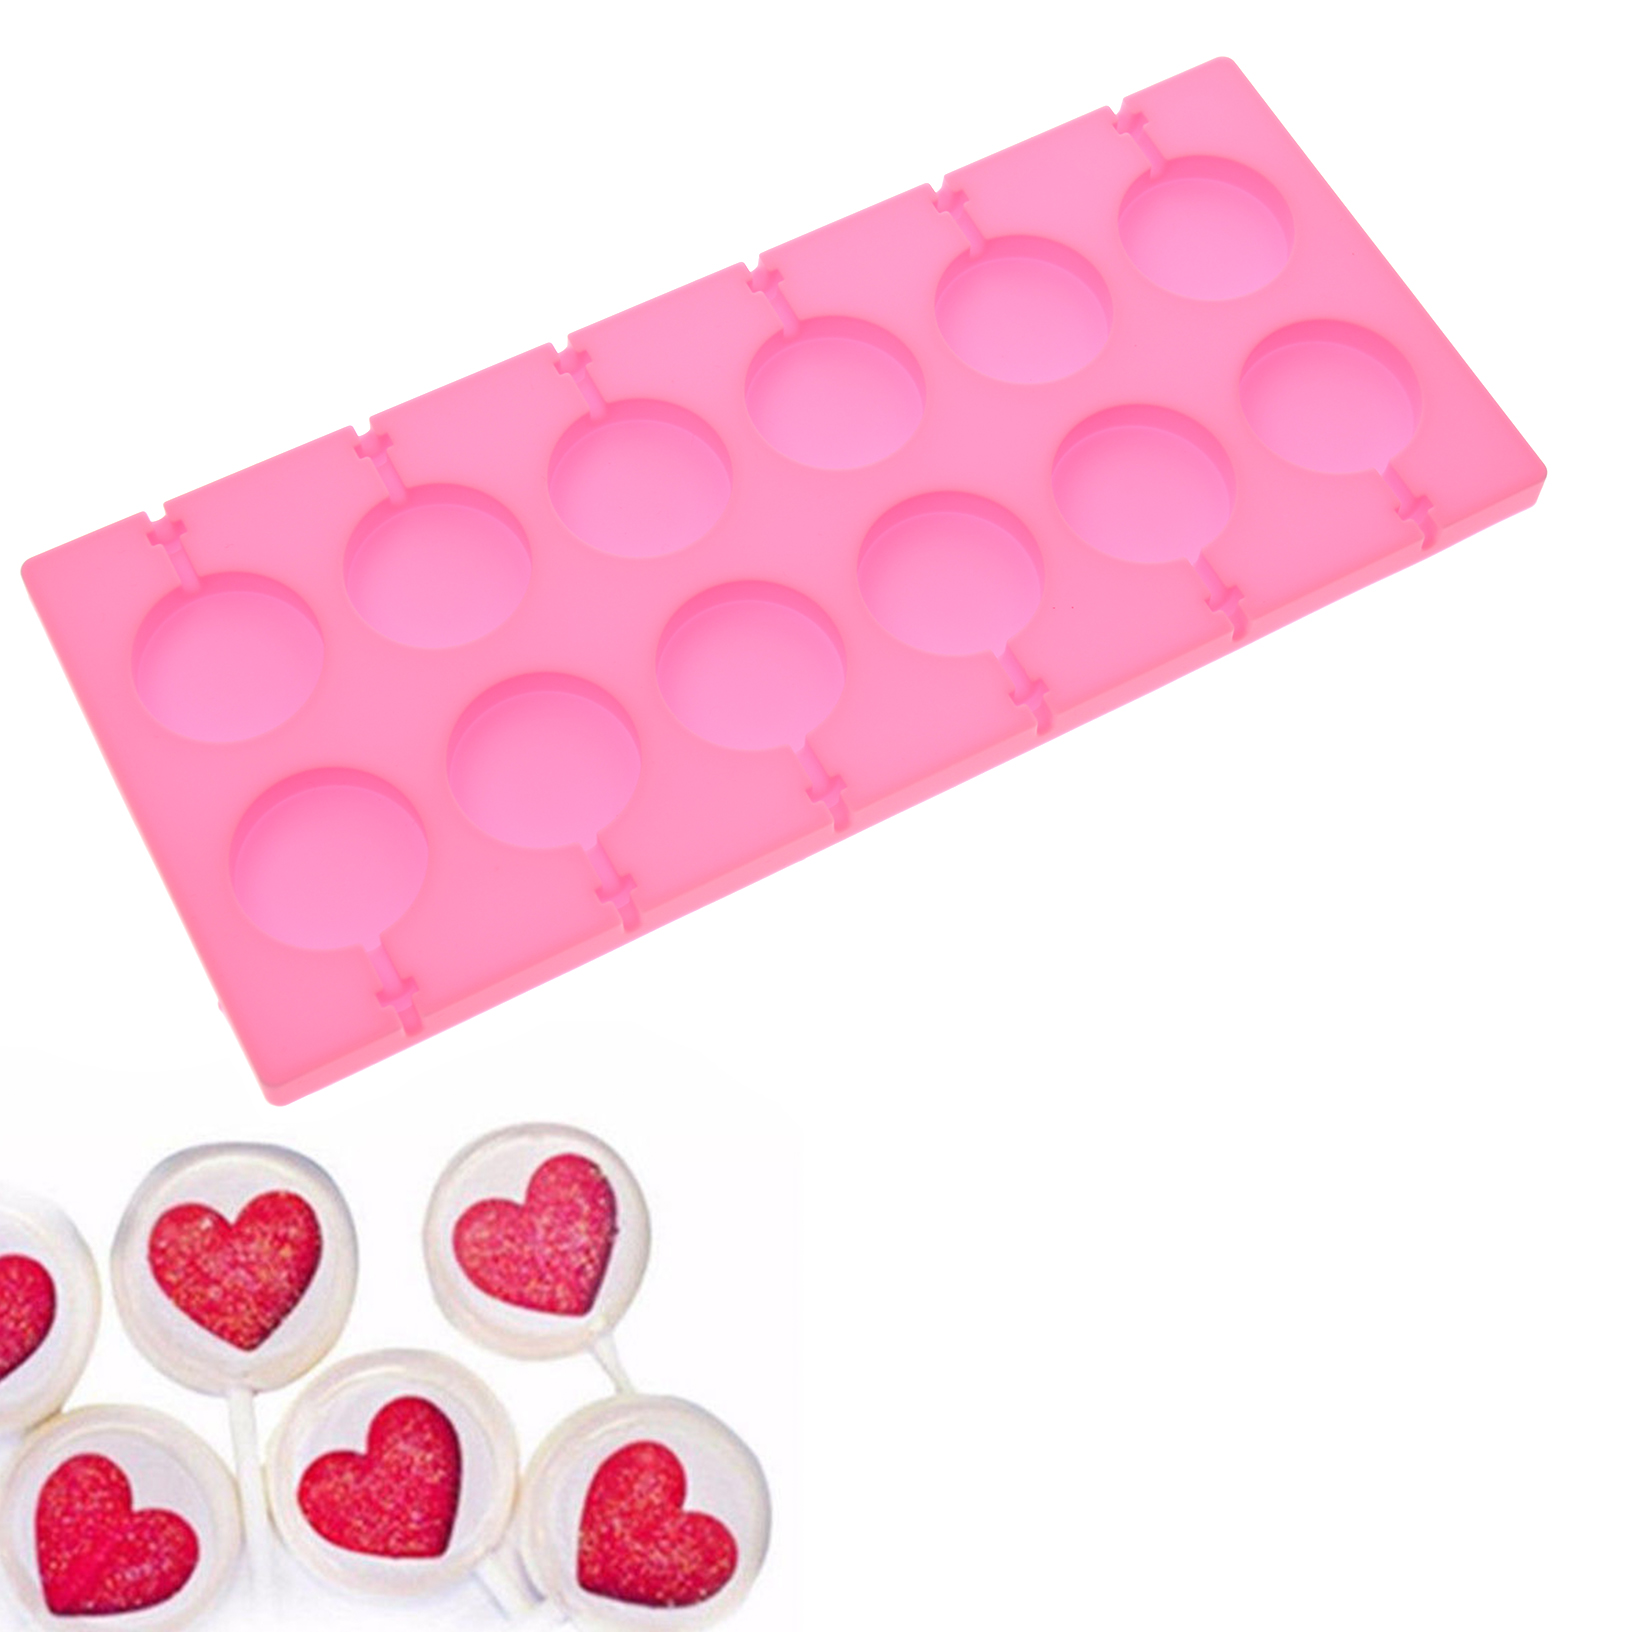 0efde938e 12 Capacity Round Shape Silicone Lollipop Mould Tray Candy Lollypop Mold